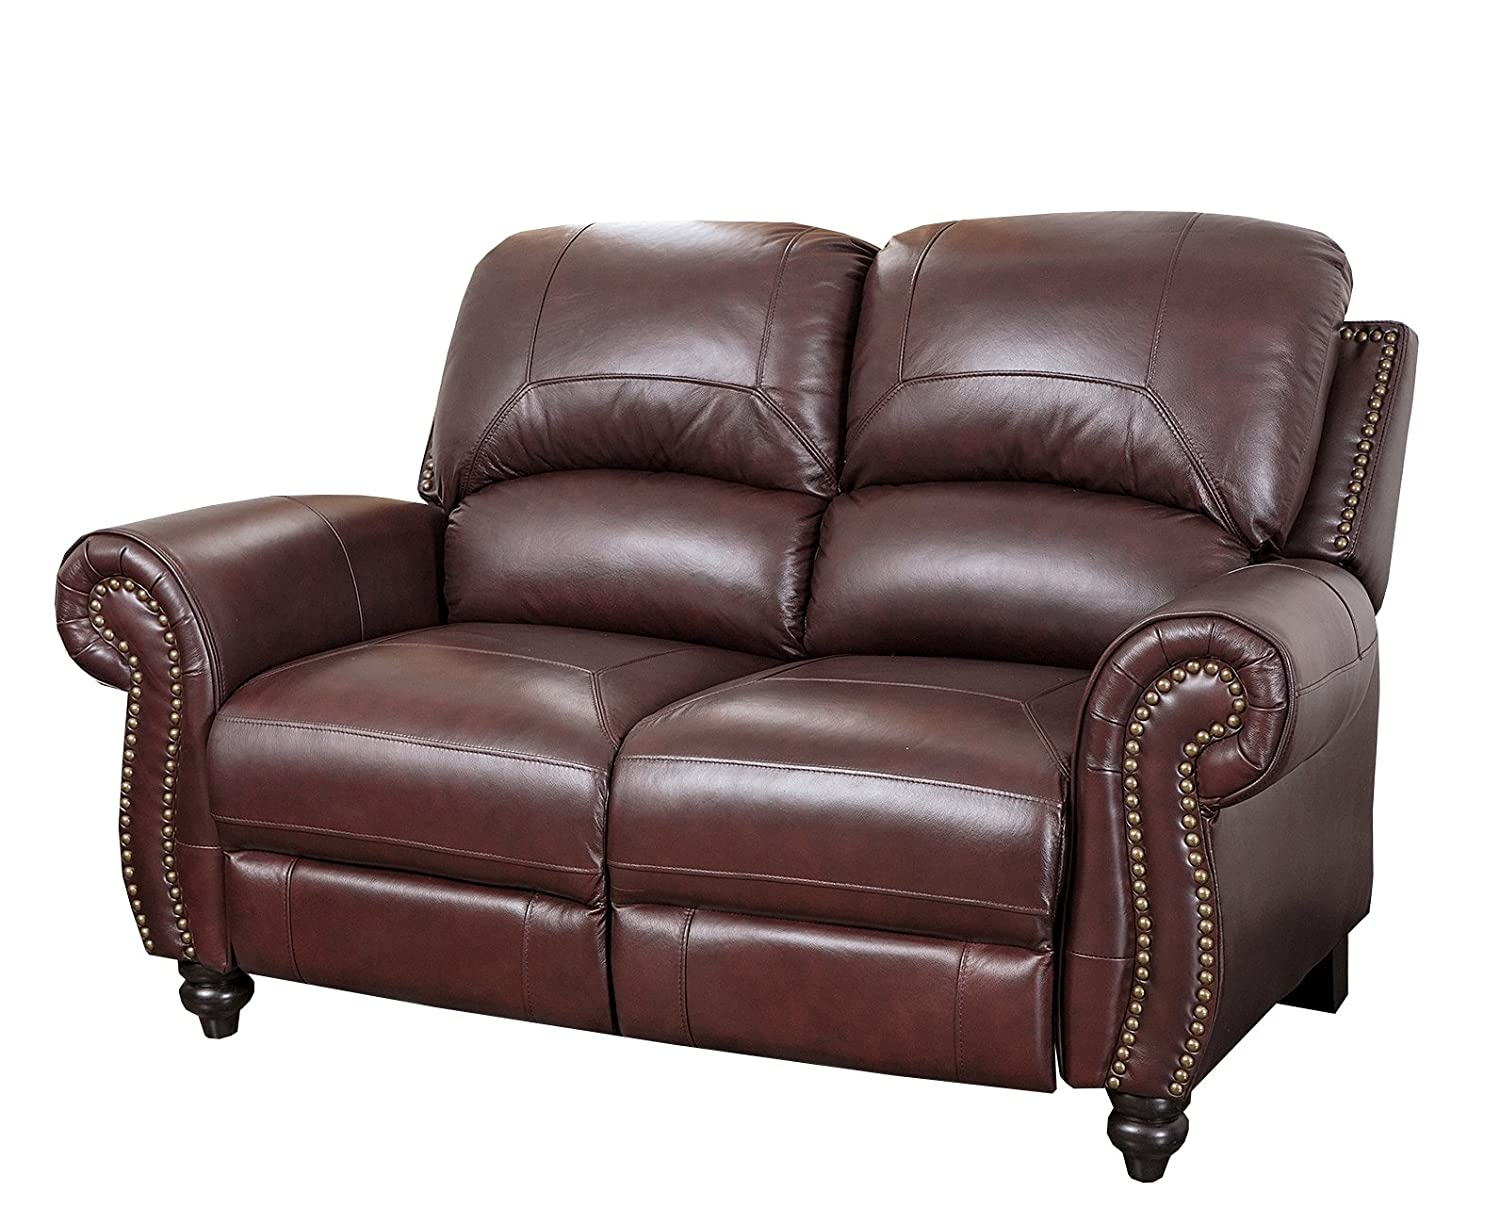 Amazon.com: Abbyson Durham Leather Pushback Reclining Loveseat: Home U0026  Kitchen